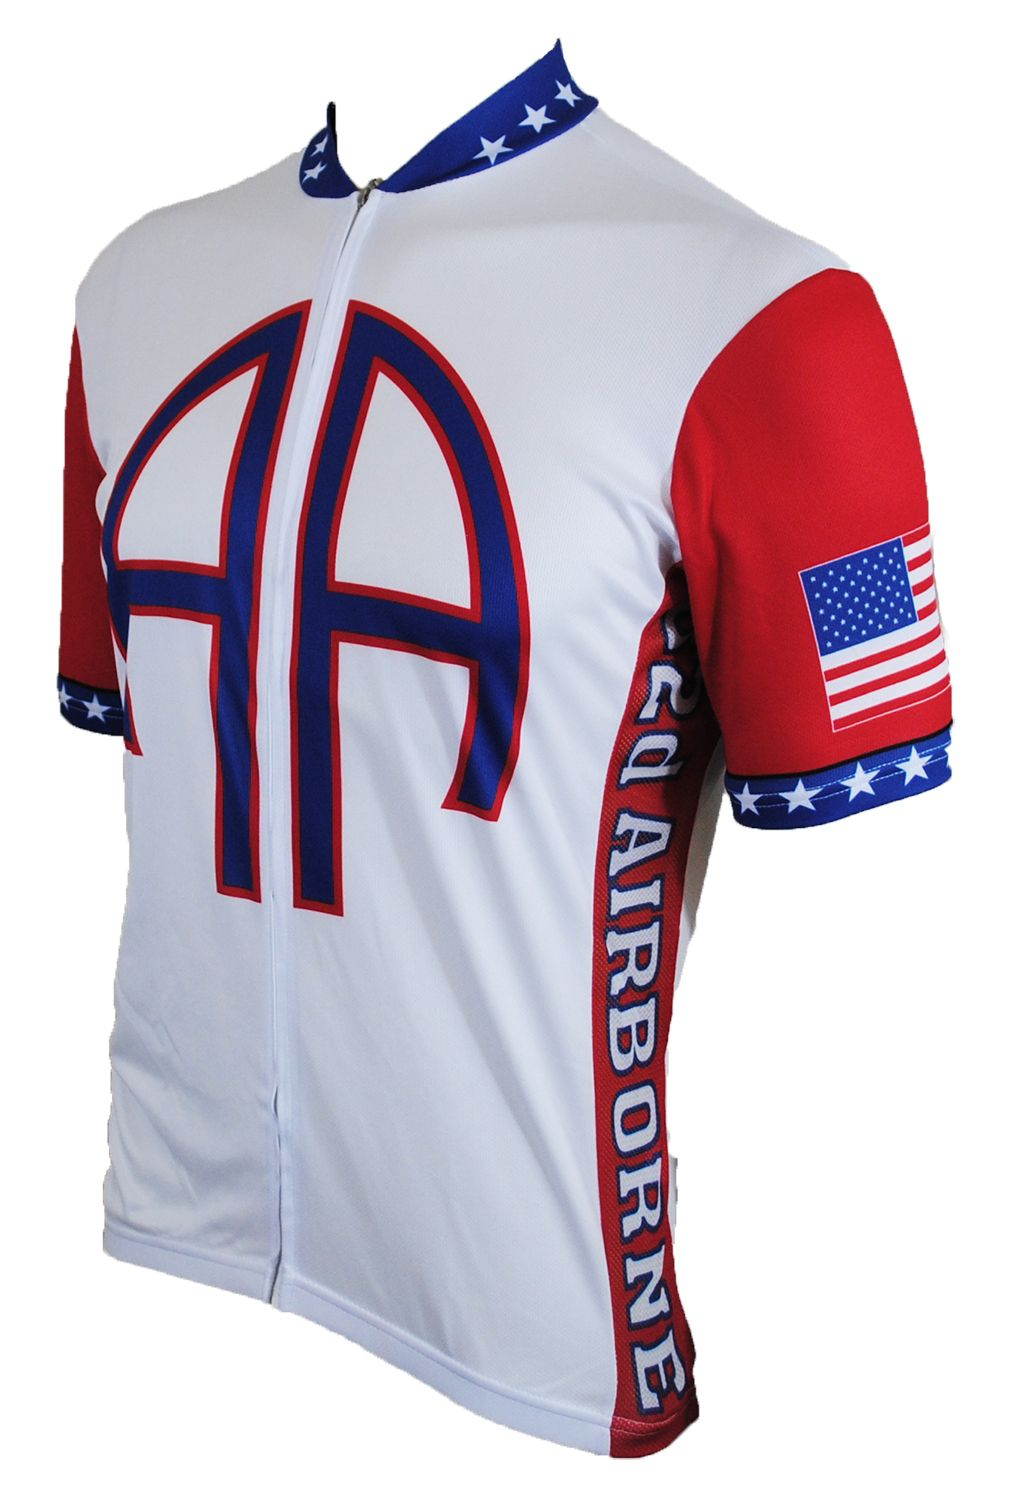 aebf64afb 82nd Airborne Cycling Jersey - FREE SHIPPING - http   www.cyclegarb.